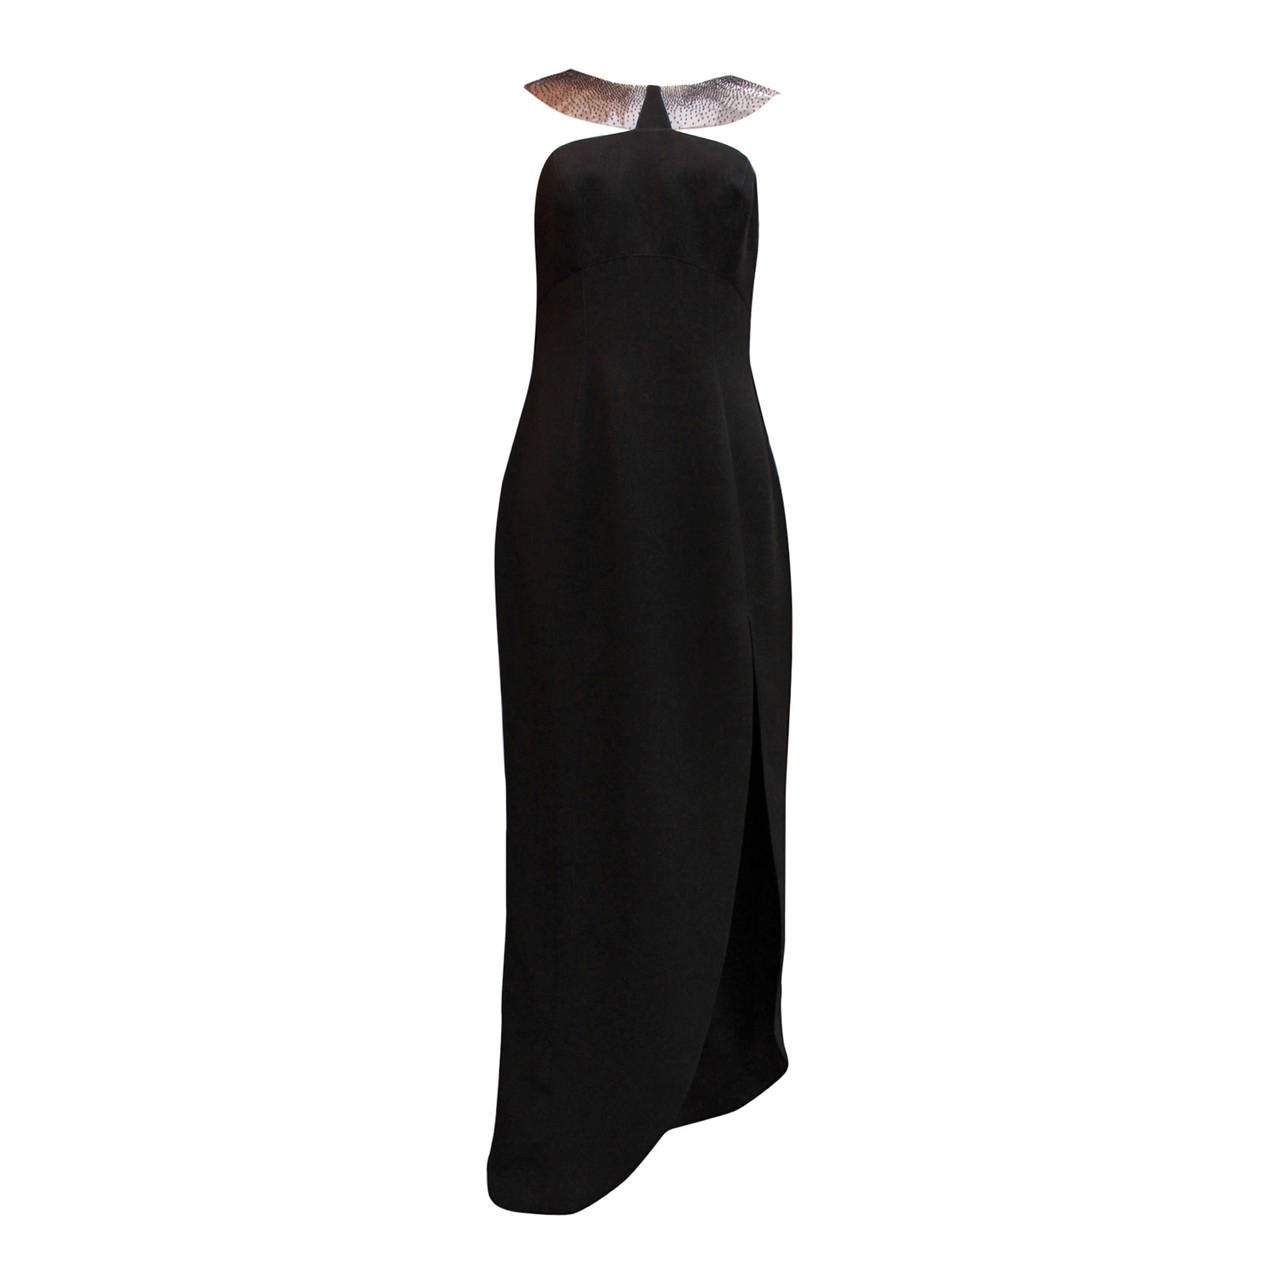 1990s Thierry Mugler Couture Black Crepe Resin and Black Bead Bib Neckline Dress For Sale